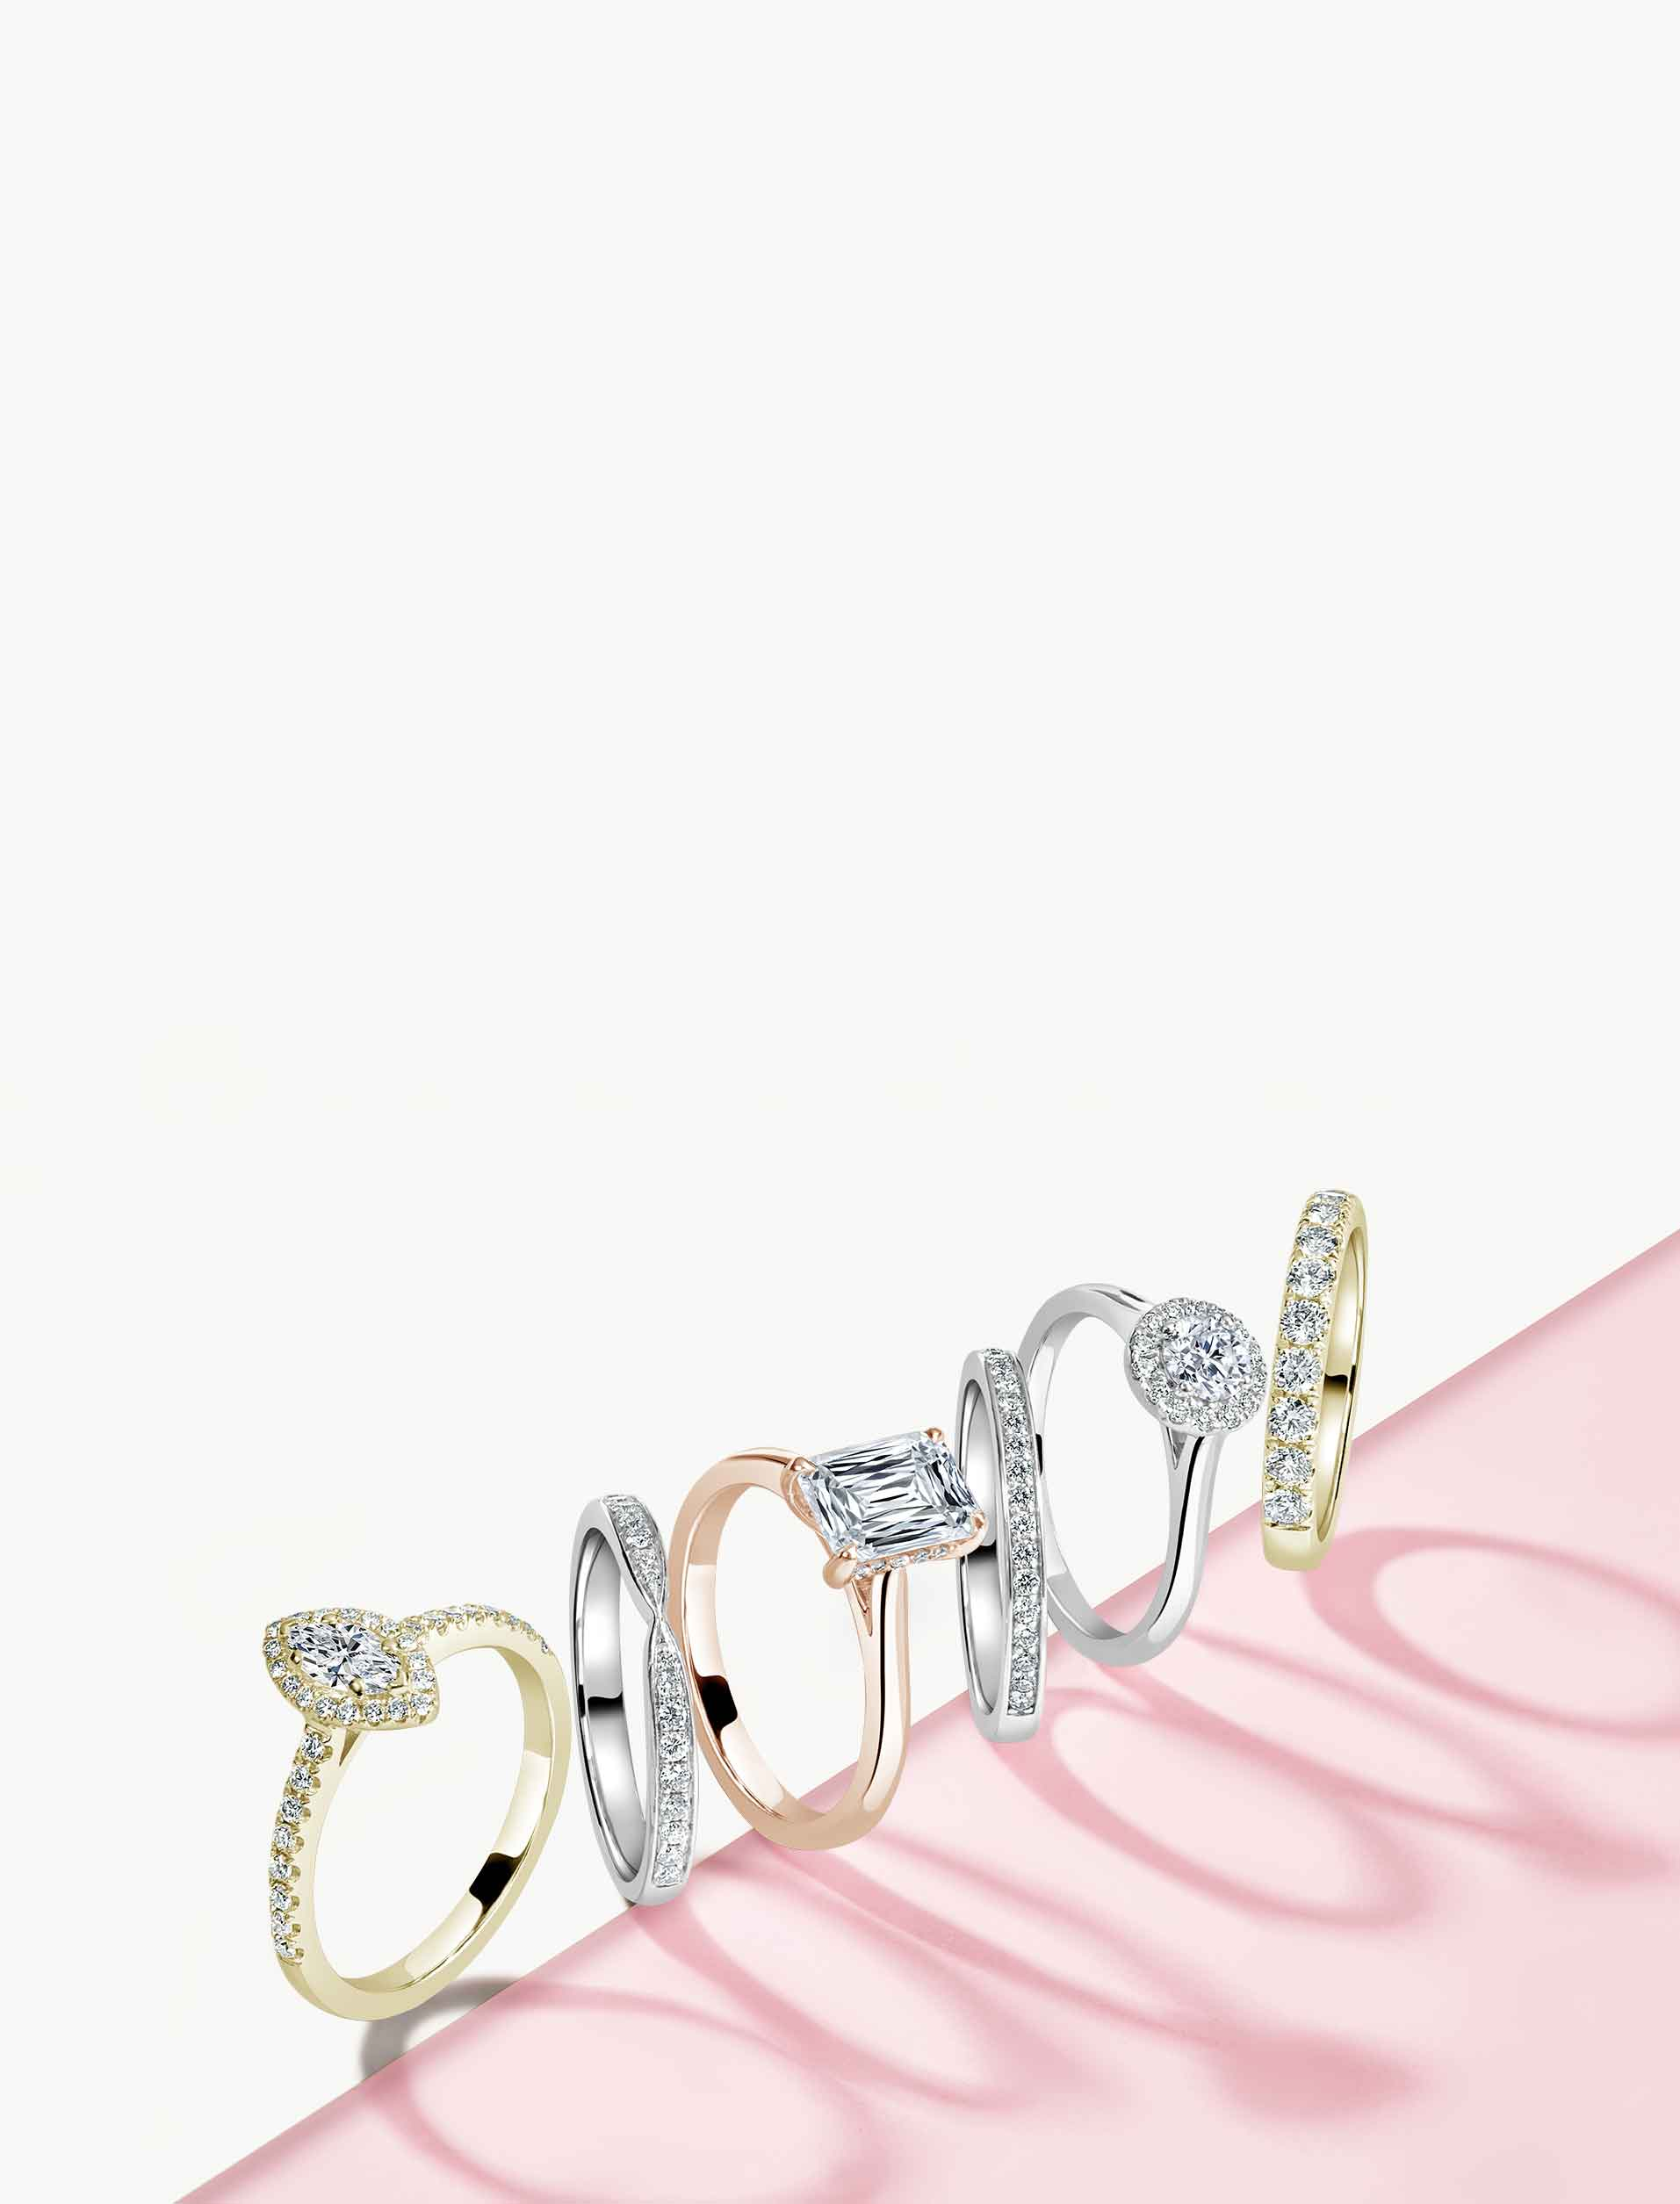 Rose Gold Oval Cut Engagement Rings - Steven Stone